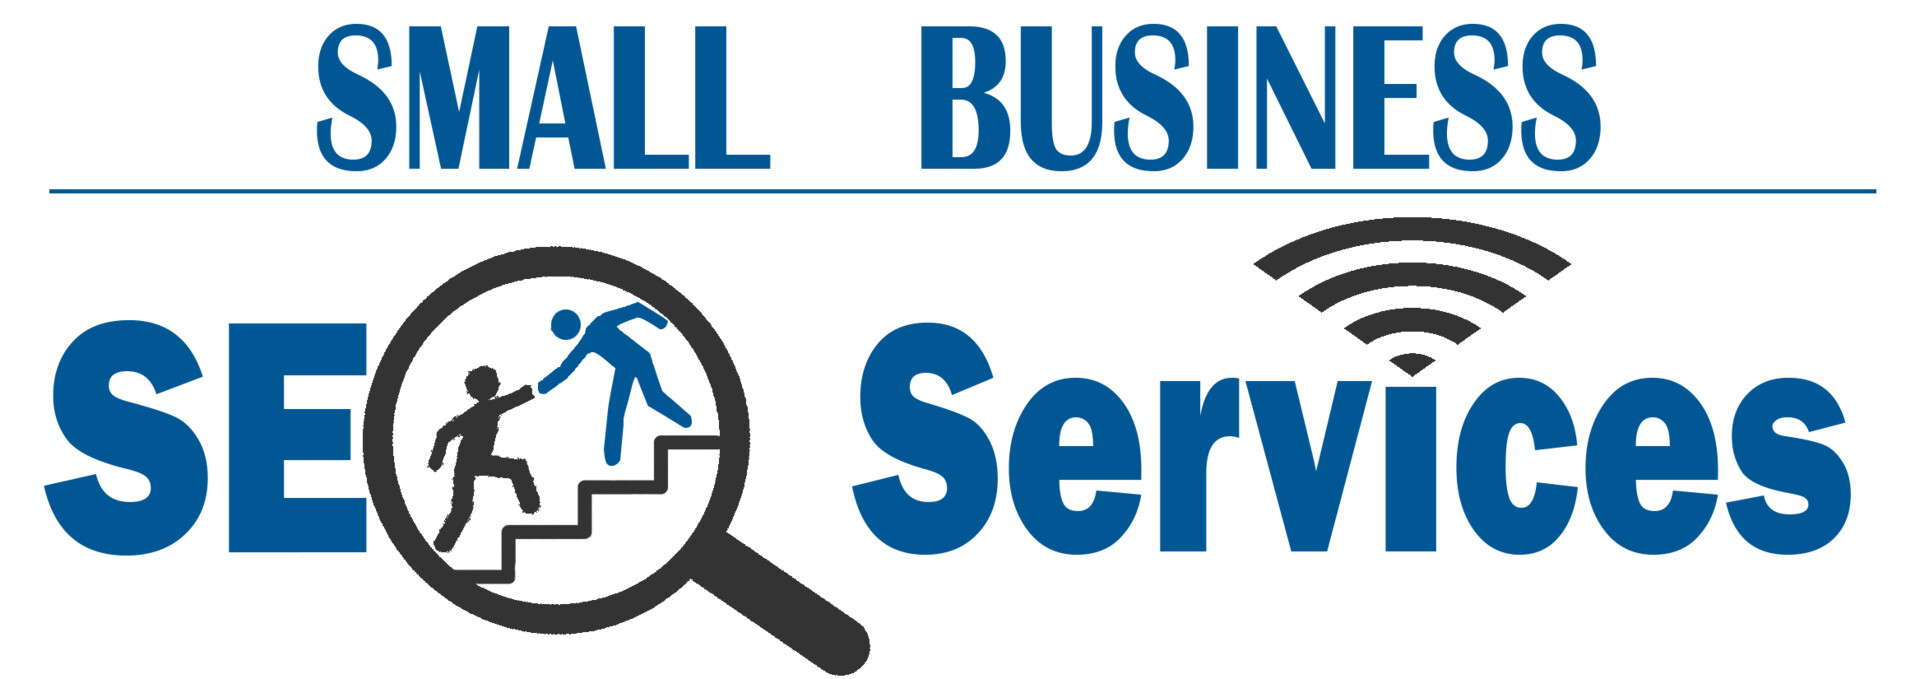 Mansi Rana - Get Affordable SEO Services For Small Business